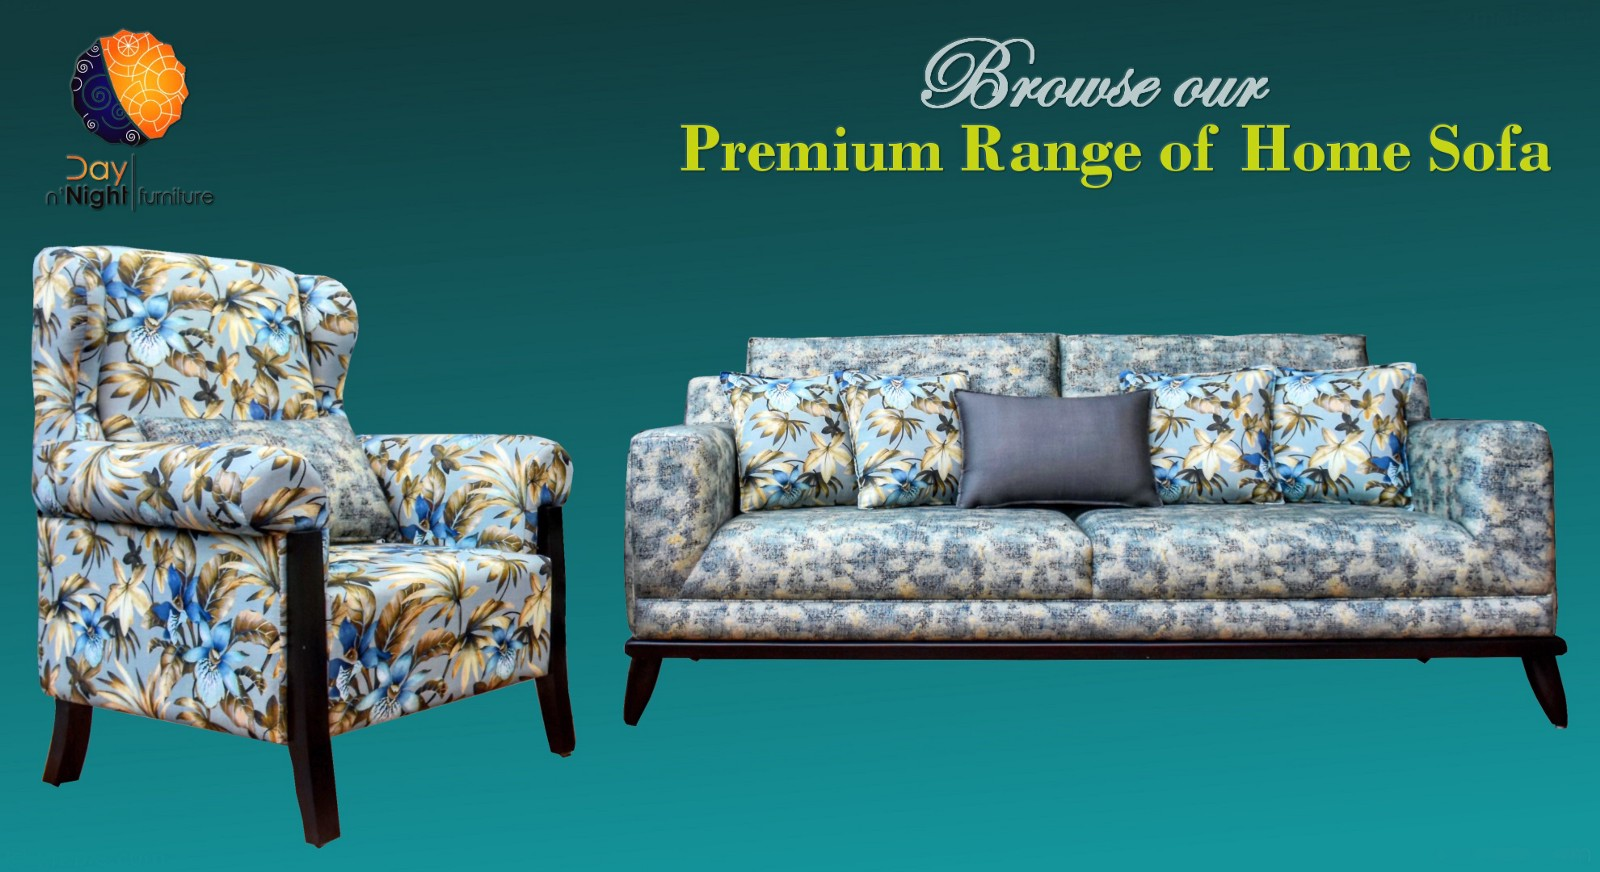 Premium And Stunning Range Of Customized Home Sofa By Day And Night  Furniture Pvt. Ltd., Web URL U2014 Http://daynightfurniture.com